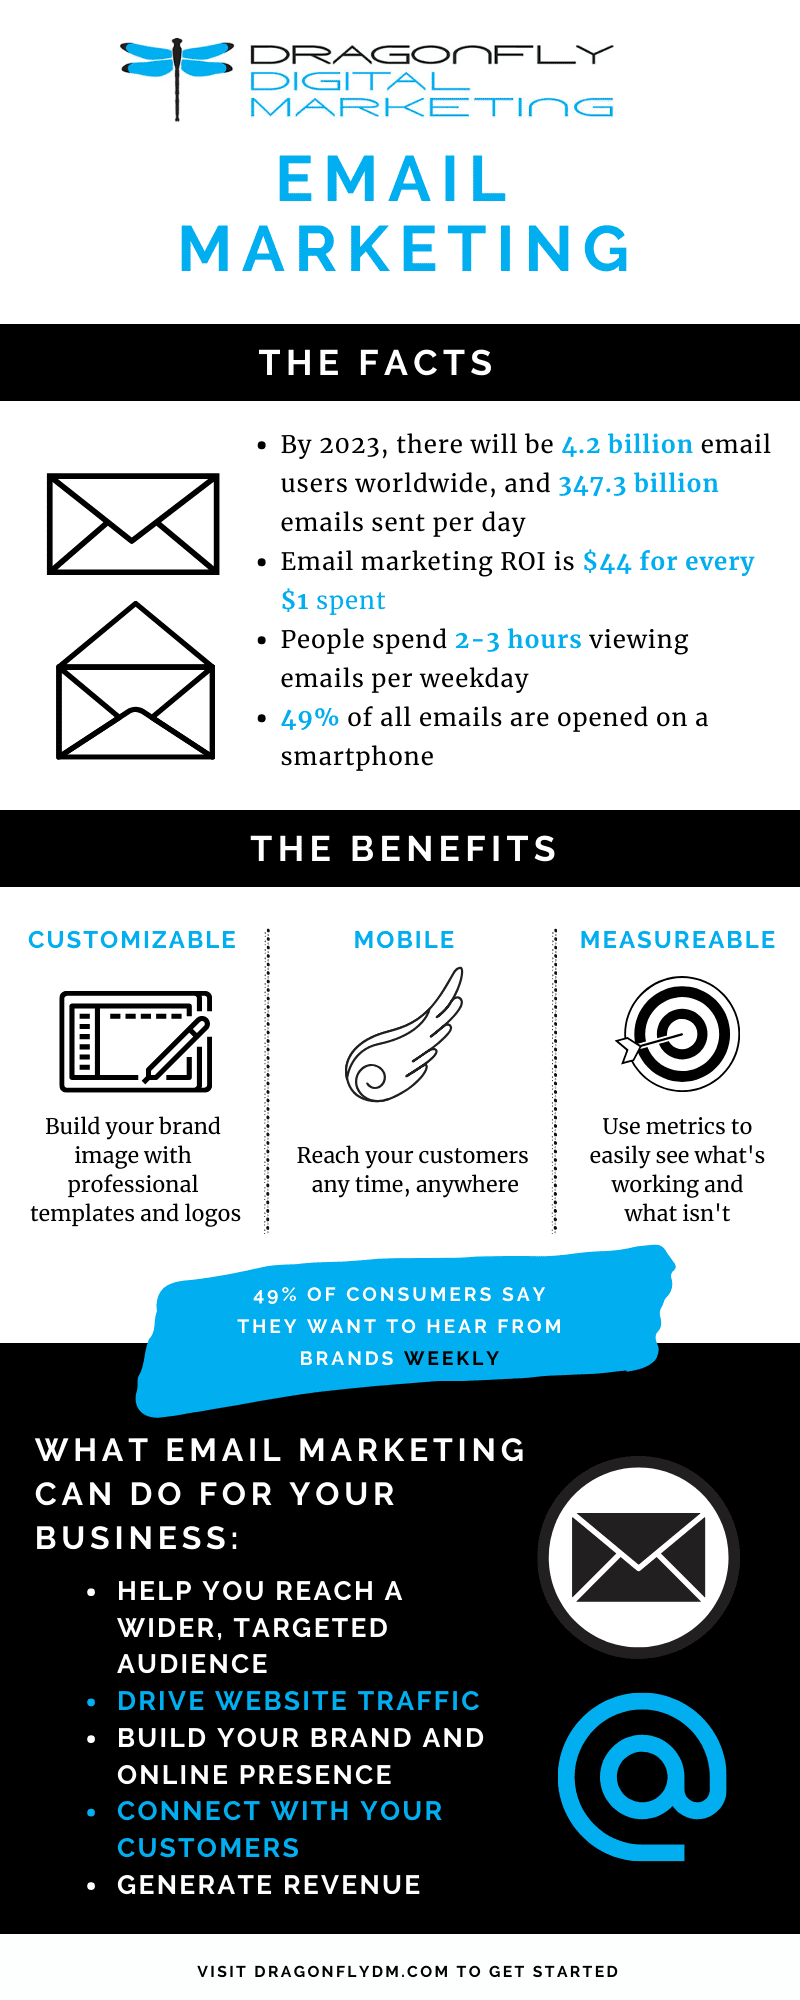 Digital marketing infographic with facts and information about email marketing.